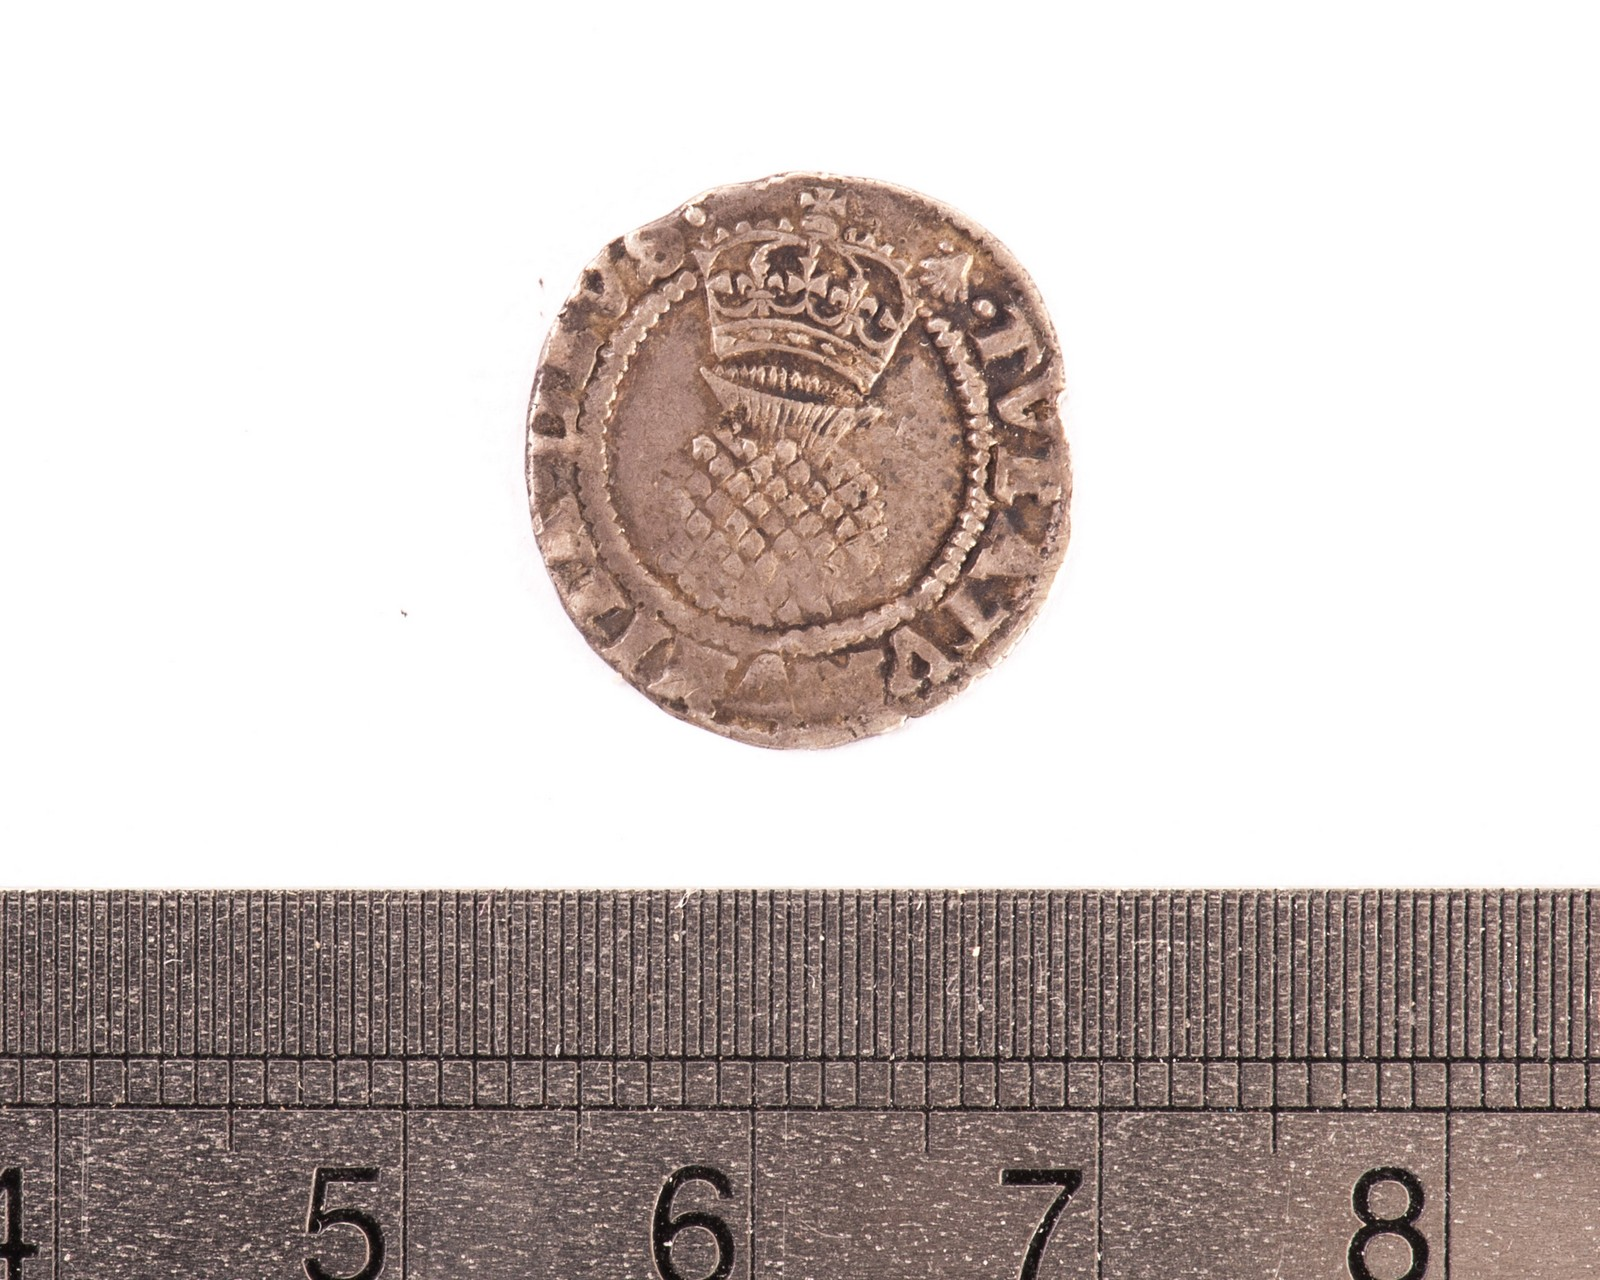 Lot 127 - A Tudor period penny, having tudor rose below coronet, the reverse with bag below crown, F